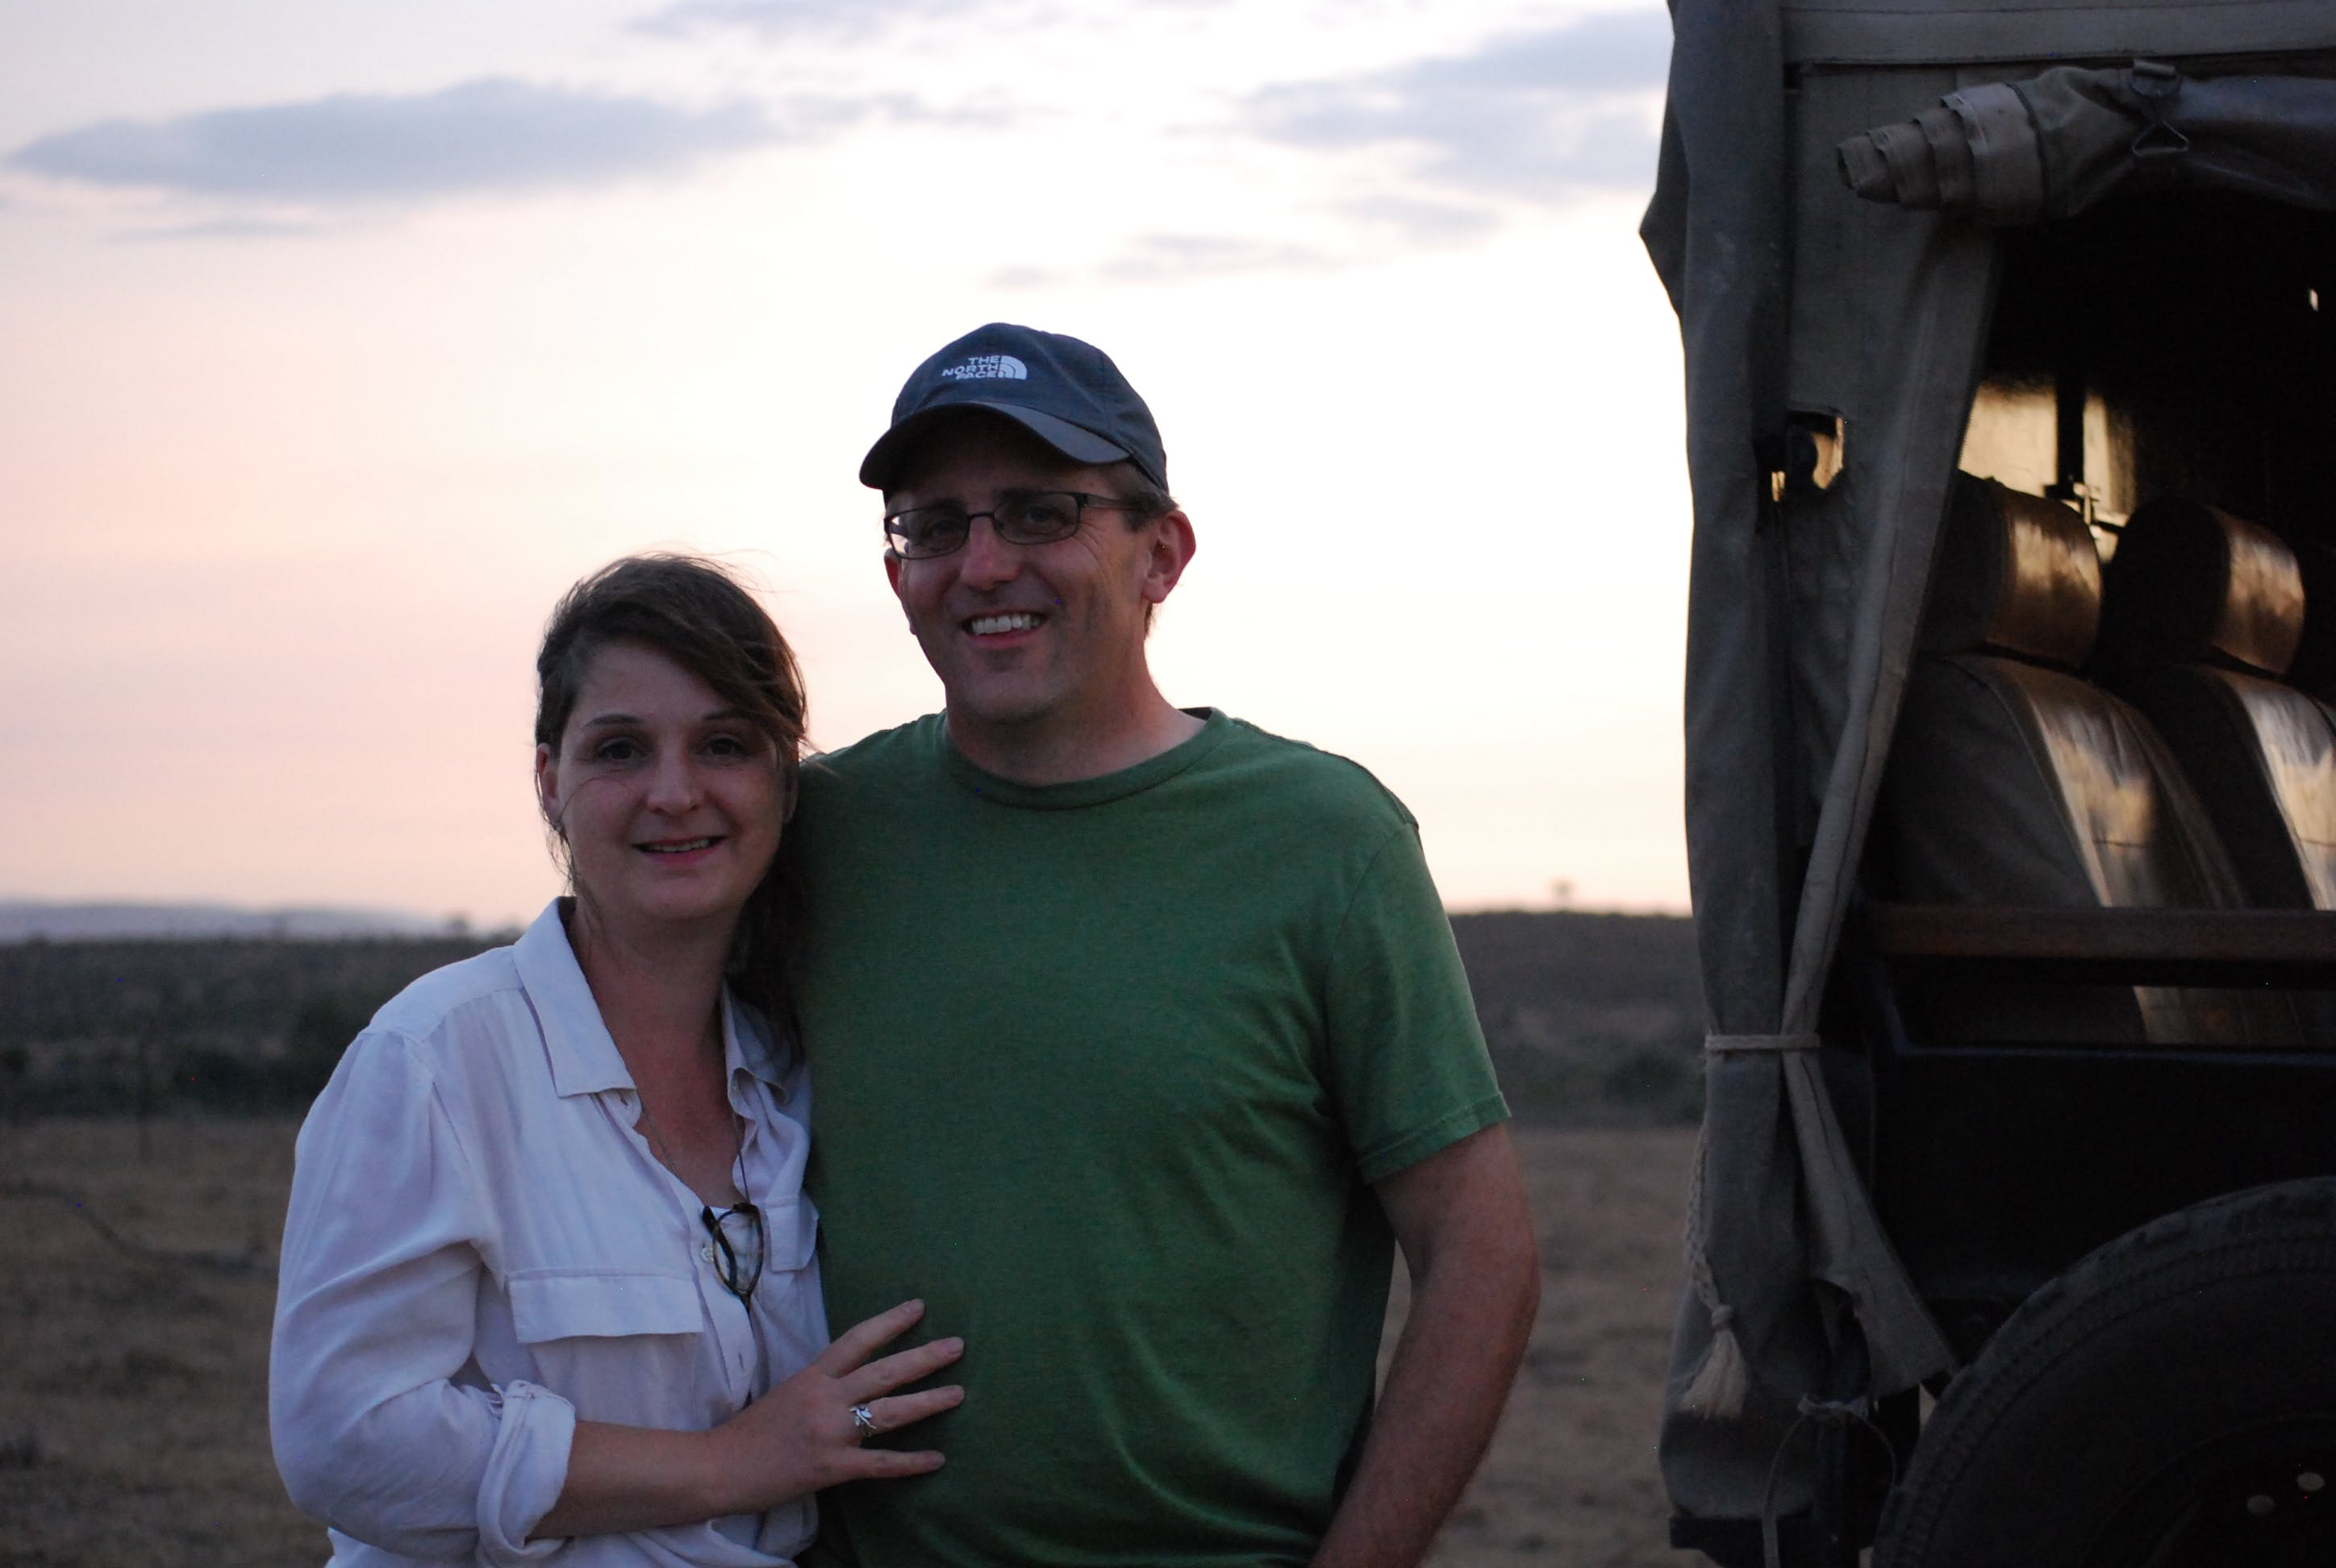 Mike Olsen '92 with his wife Carrie Urheim '92